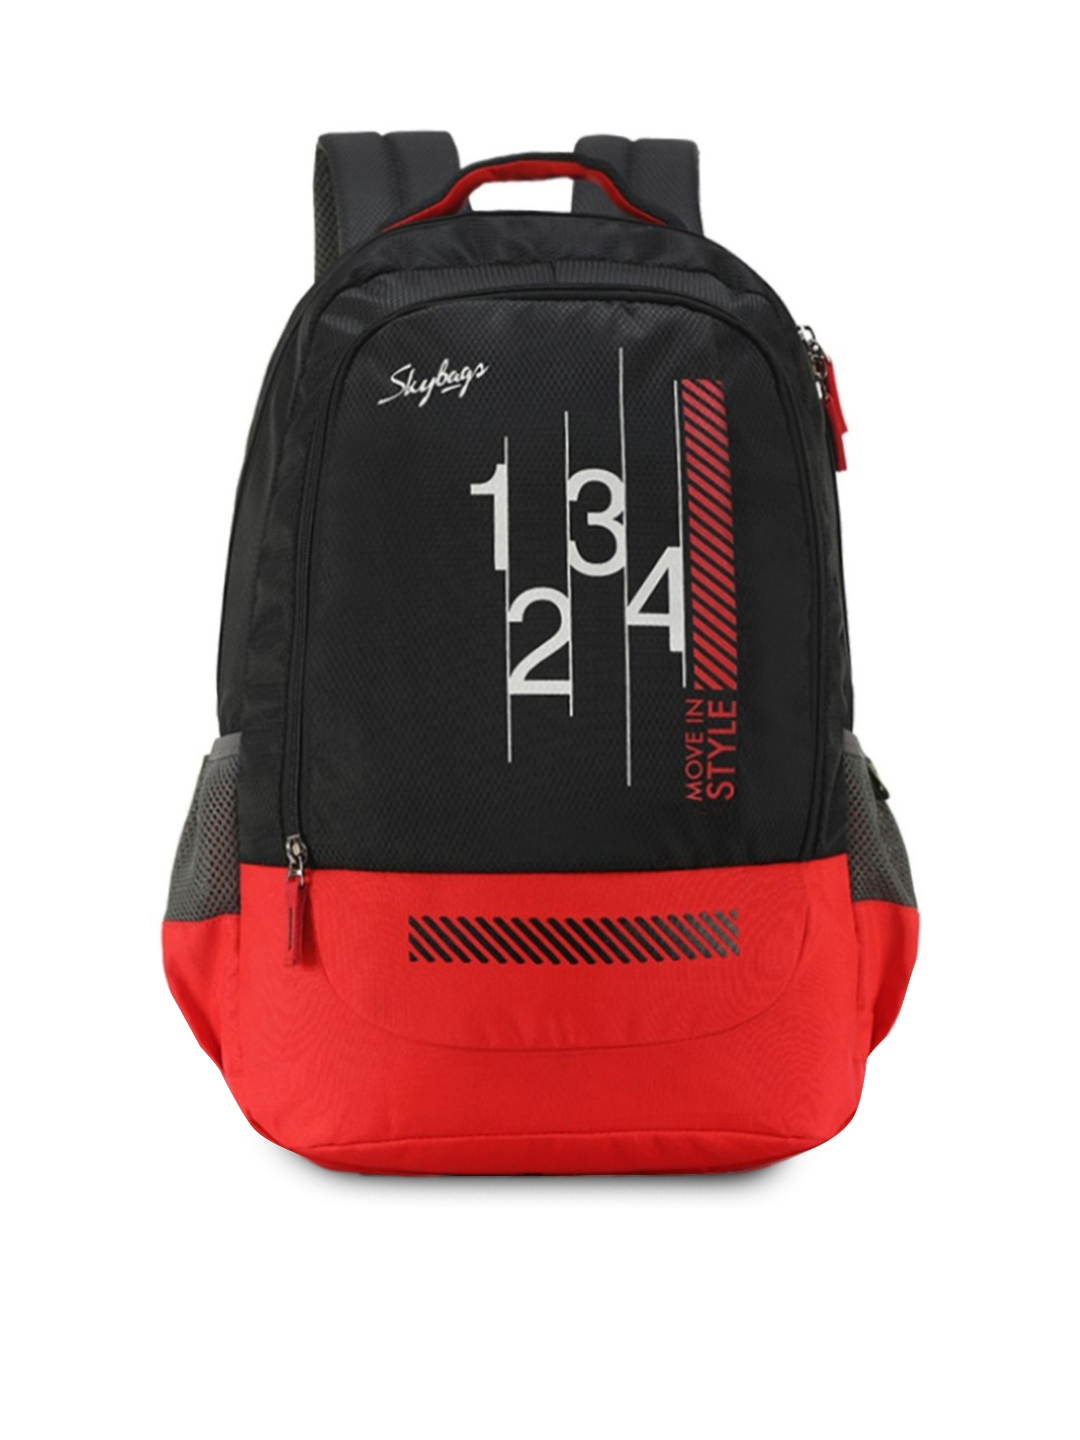 Skybags Unisex Black Graphic Backpack